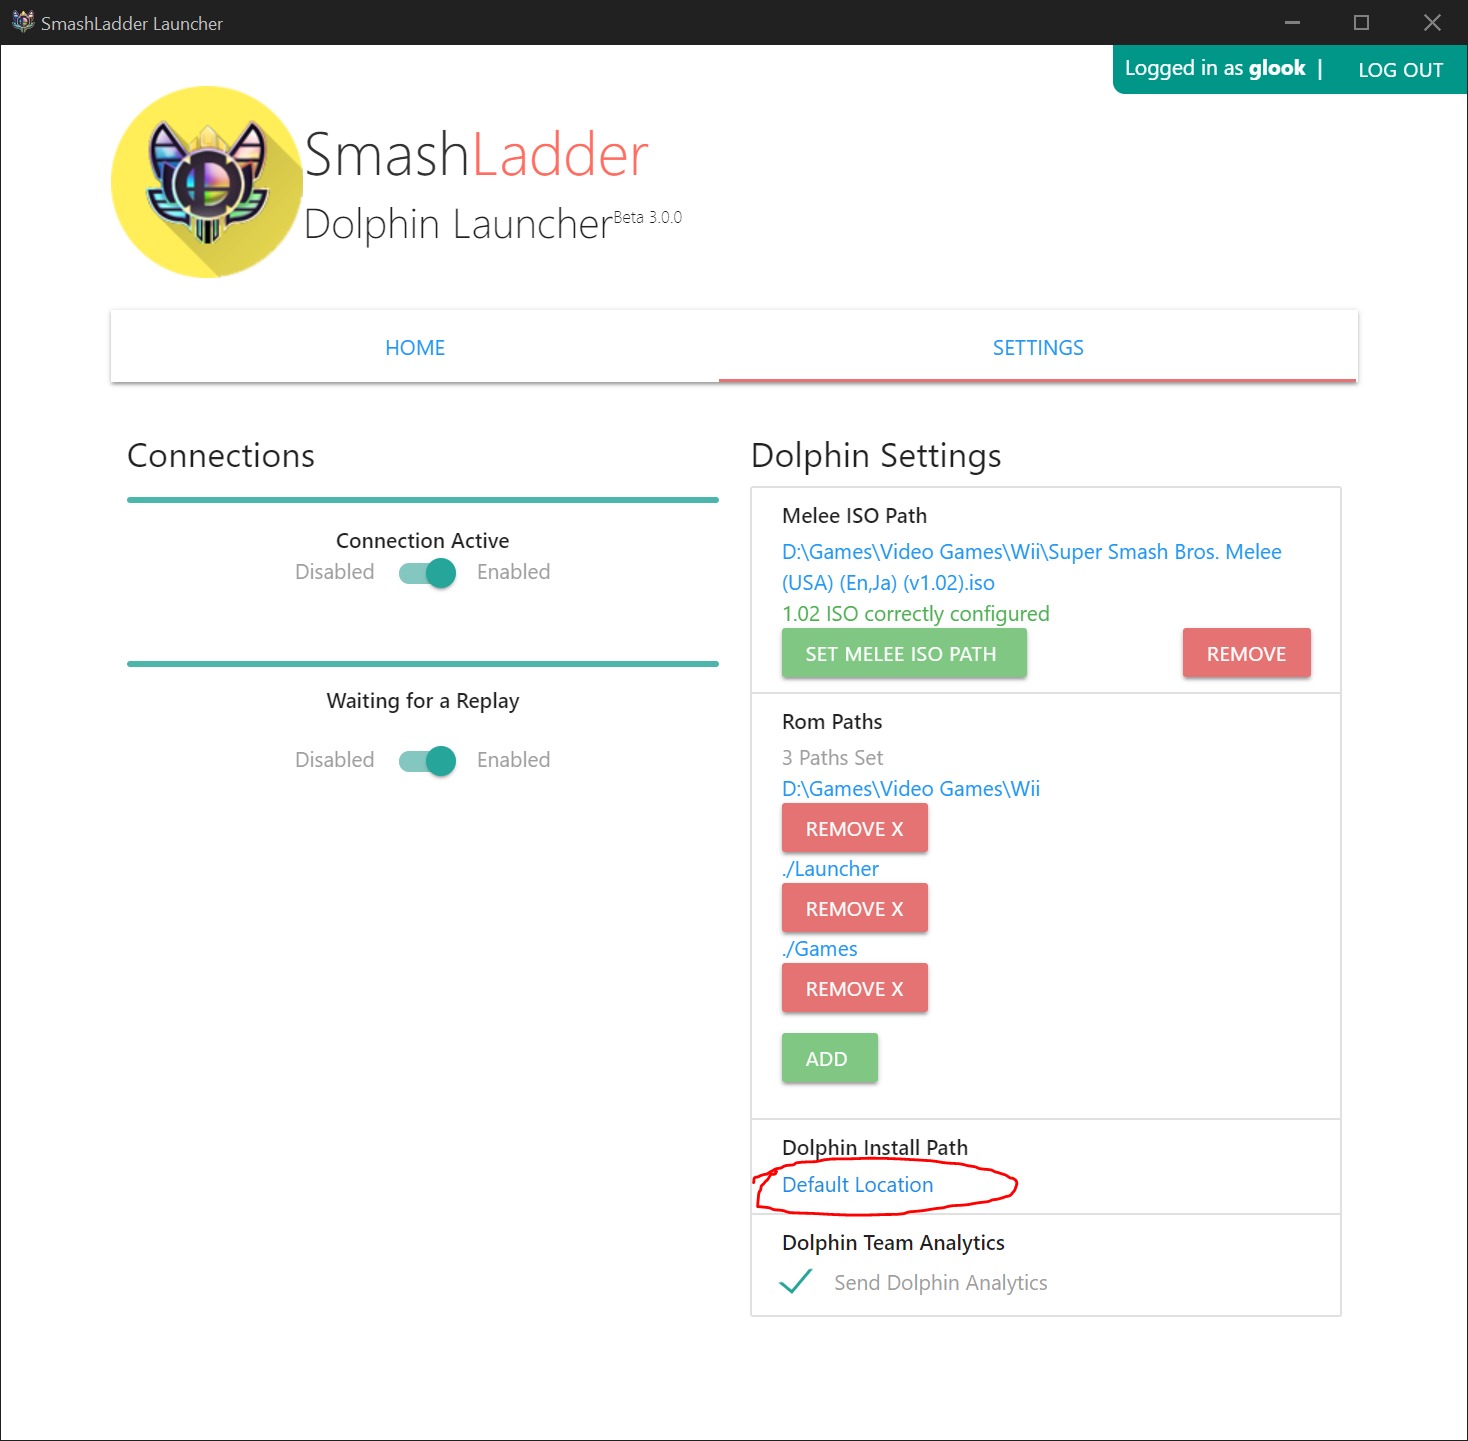 SmashladderLauncherSettings